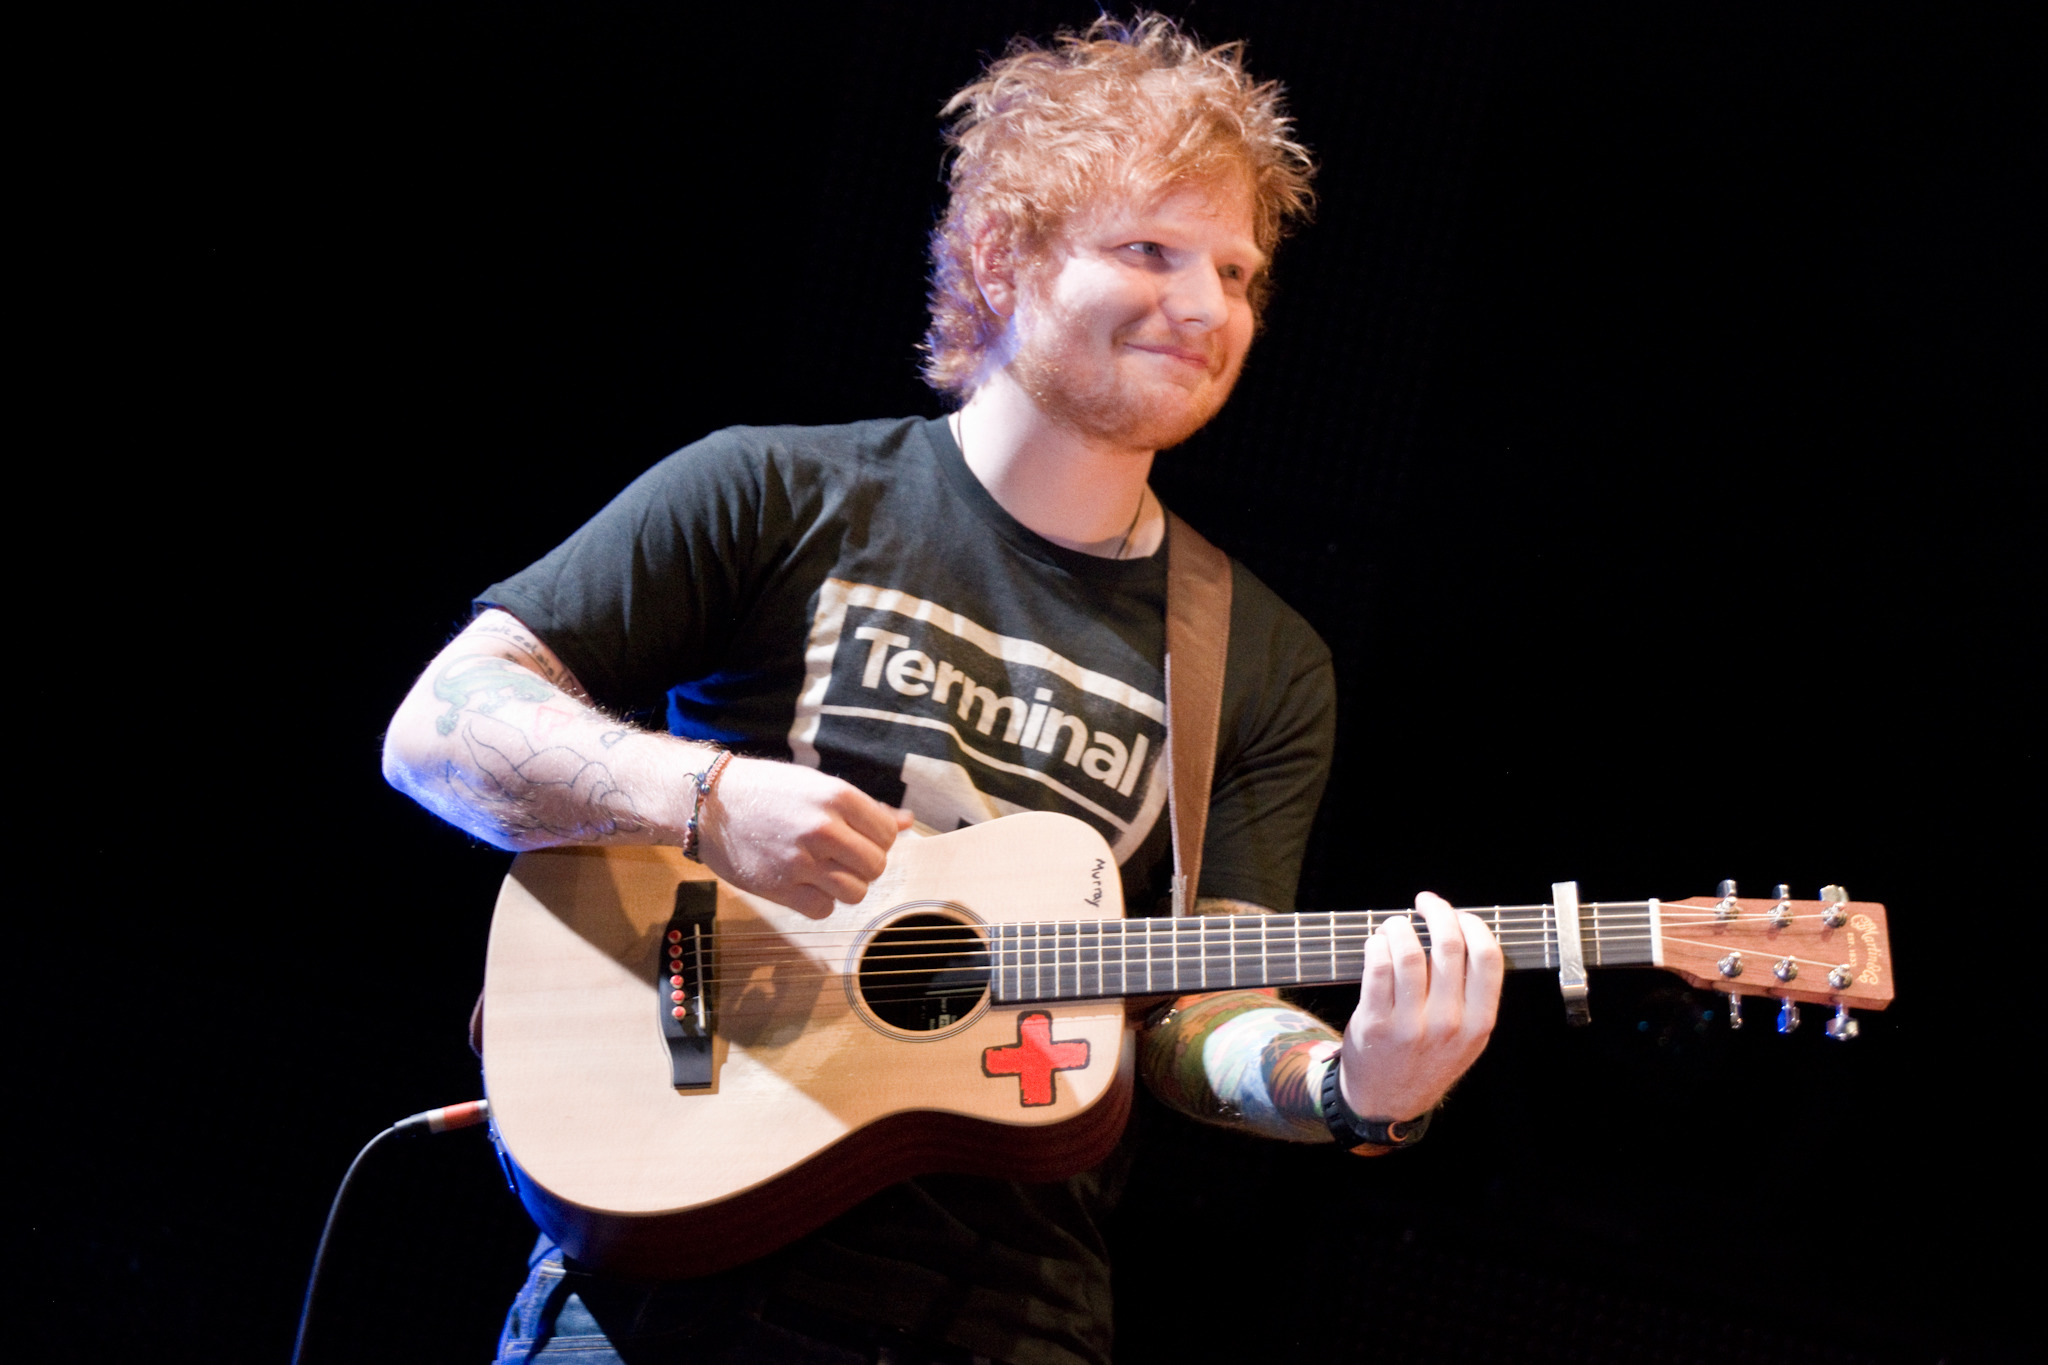 Ed Sheeran is doing a secret show in NYC